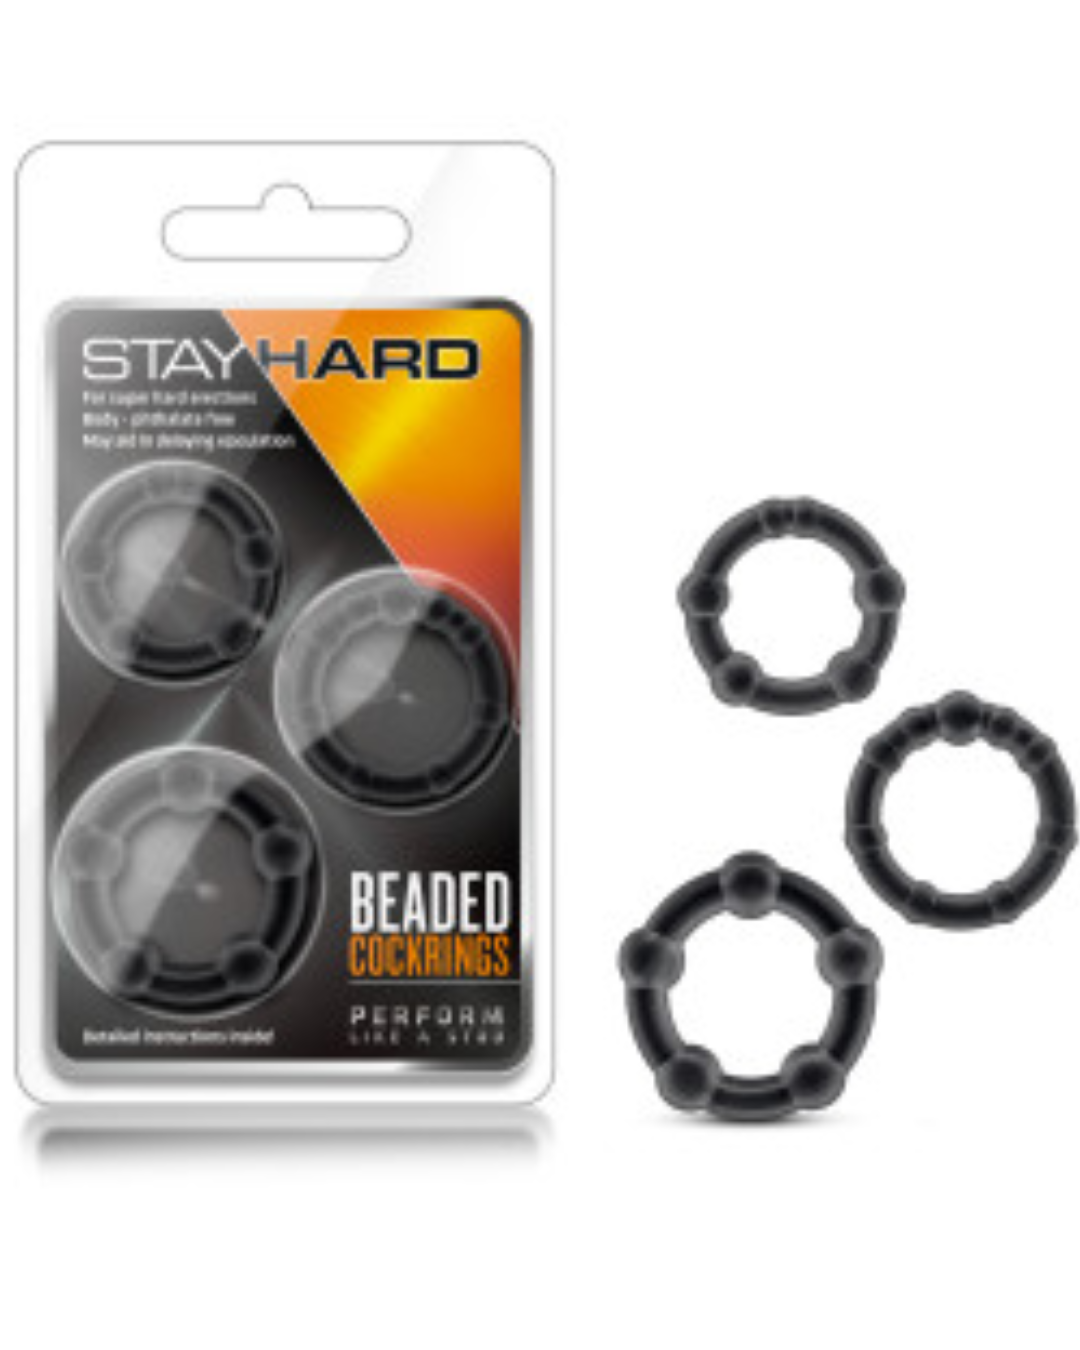 Stay Hard Beaded Cock Ring 3 Package by Blush Novelties - Assorted Colors